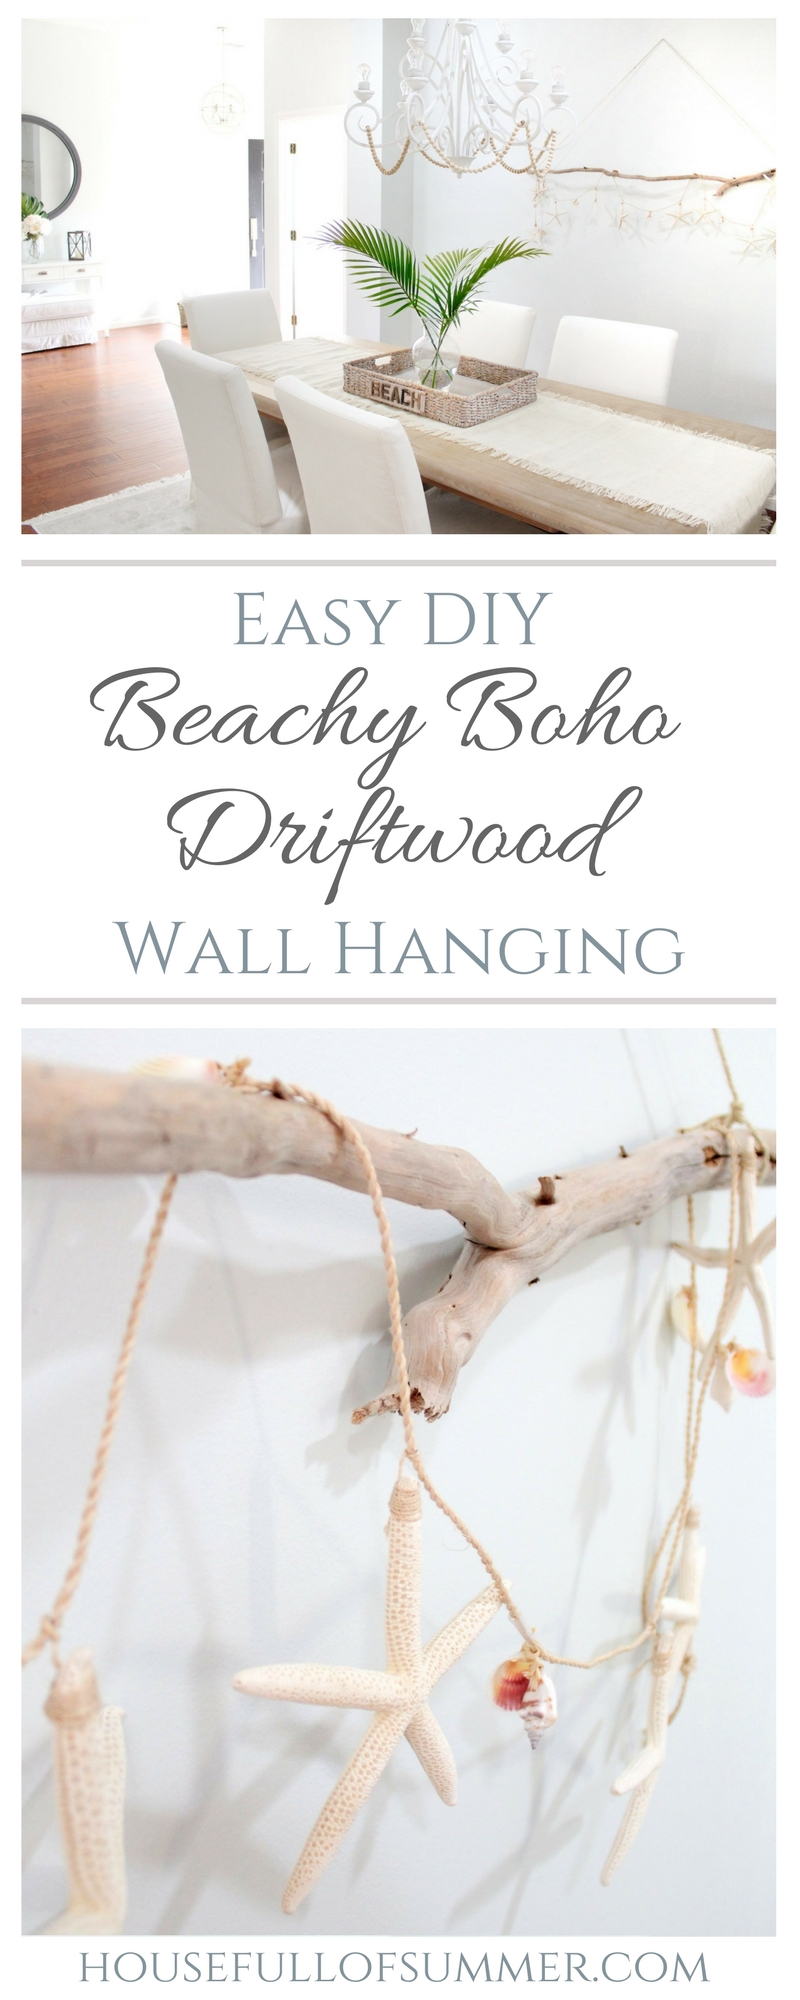 Easy DIY Beachy Boho Driftwood Wall Hanging | House Full Of Summer Blog,  Wall Ideas